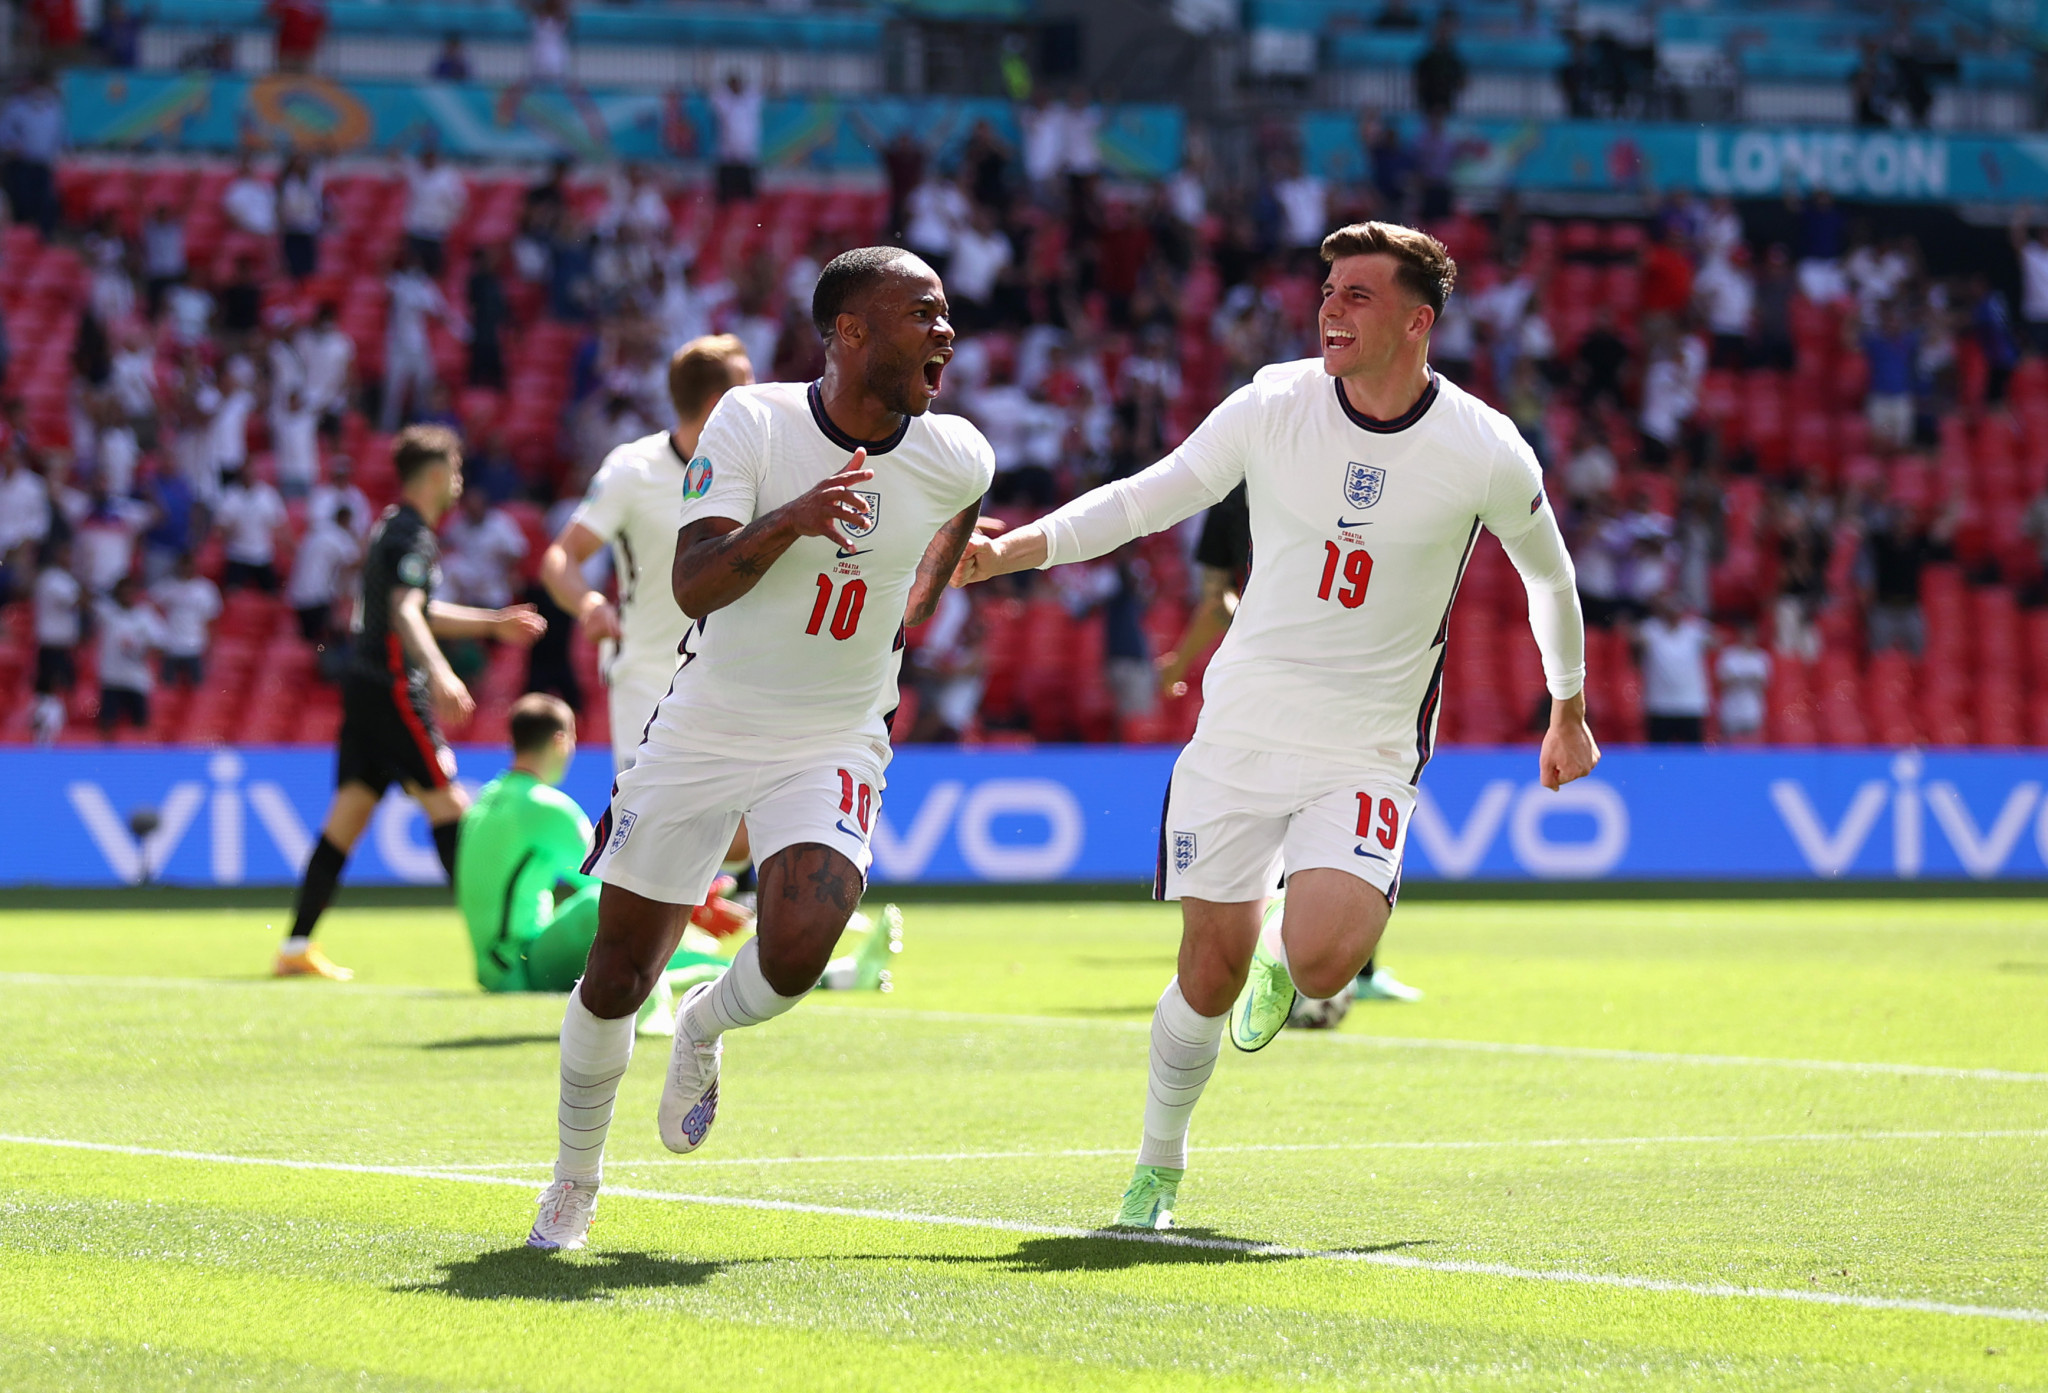 Local lad Sterling gives England victory over Croatia in opening Euro 2020 match at Wembley